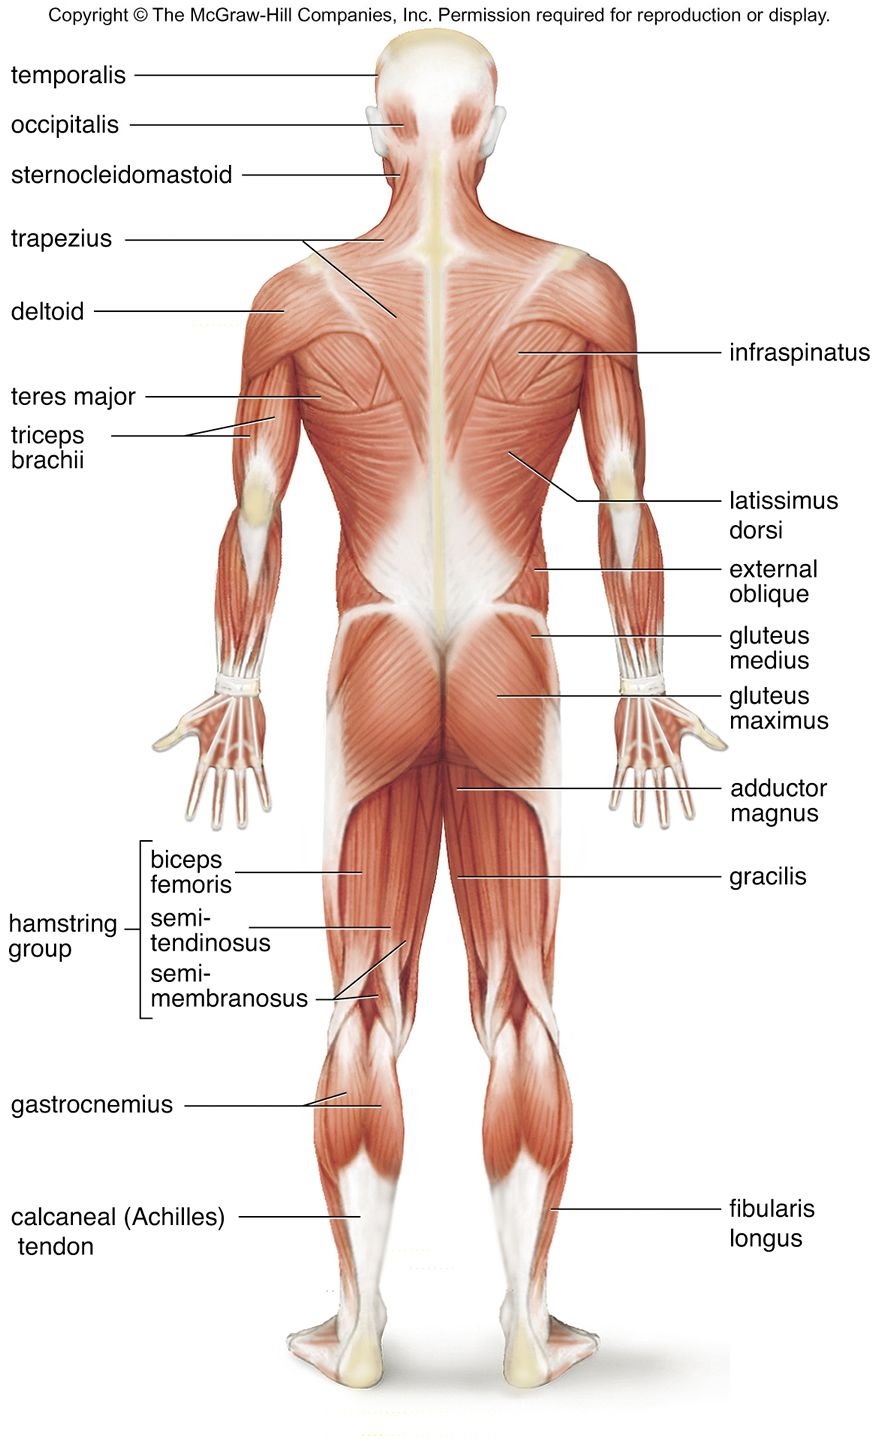 Superficial Muscles Posterior View Superficial Skeletal Muscles